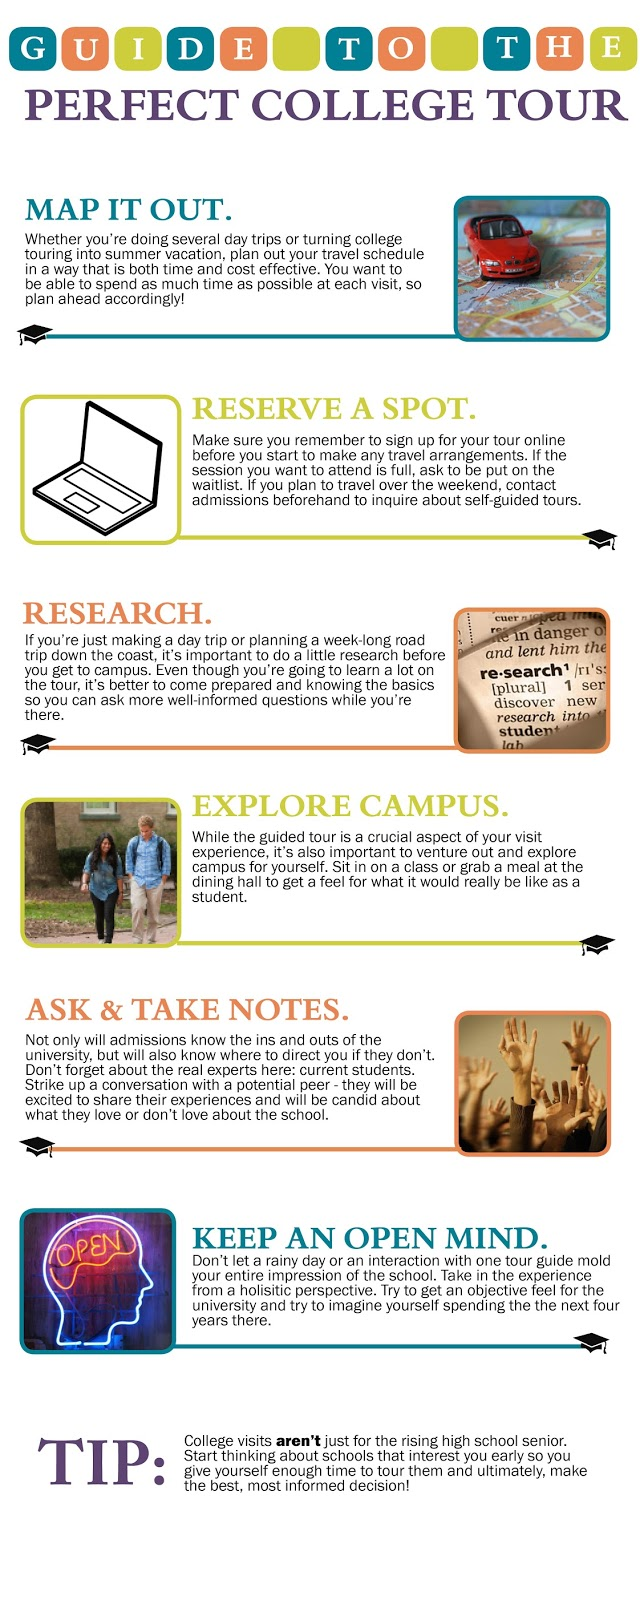 UNC Admissions Blog: Guide to the Perfect Tour